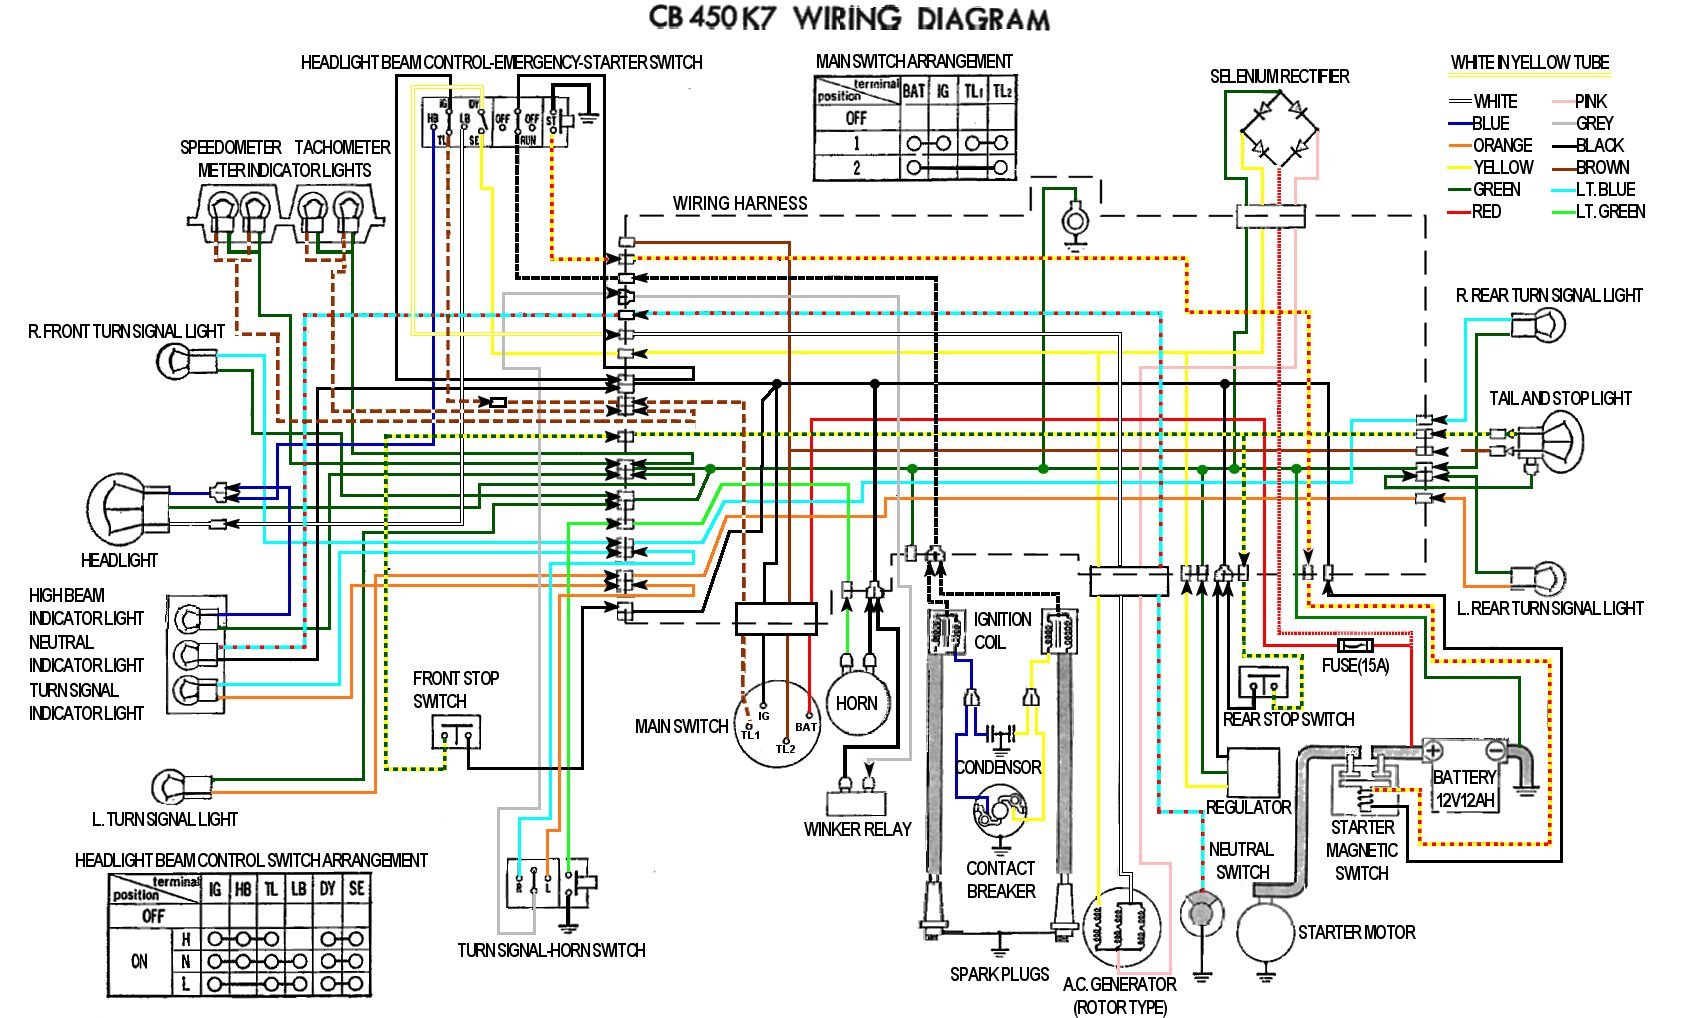 cb 450 wiring schematic wiring diagram rh blaknwyt co 1974 Honda CB450 Wiring-Diagram Electrical Wiring Diagrams